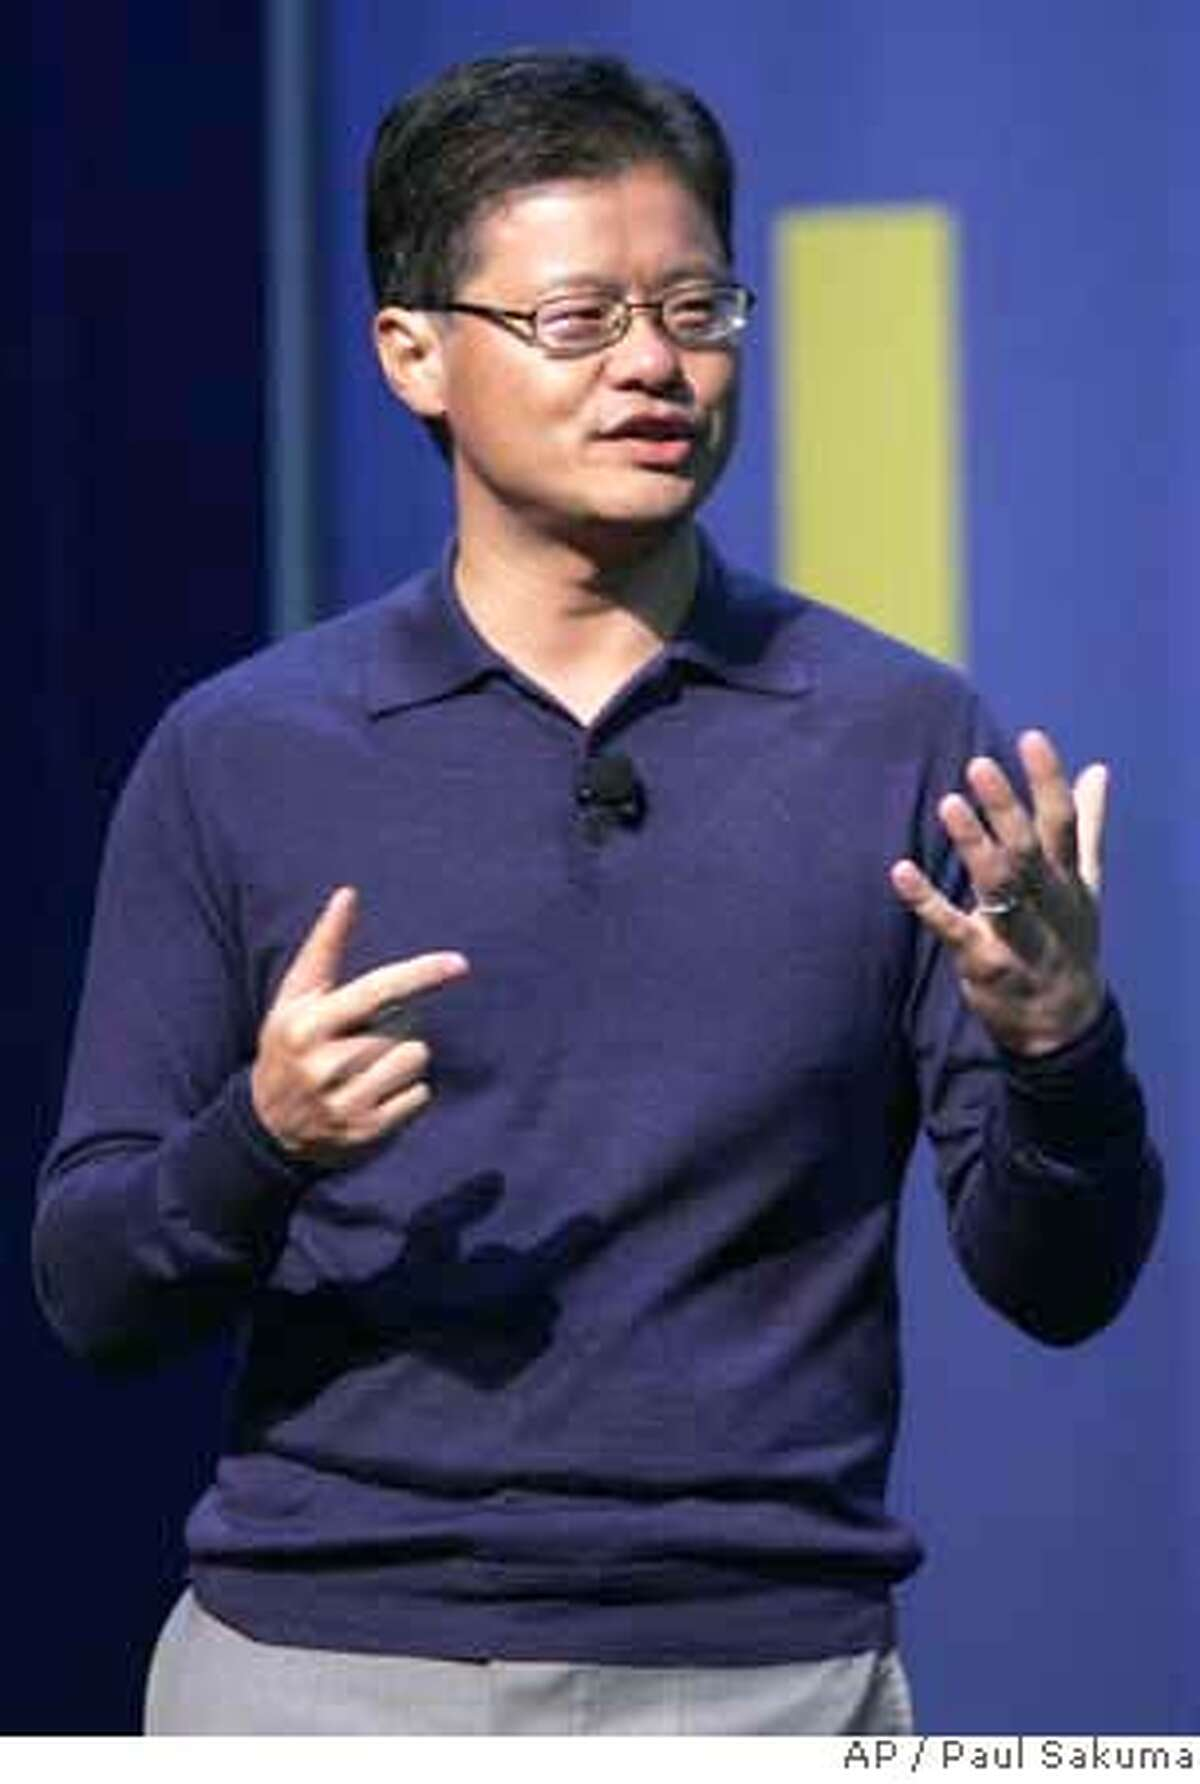 Yahoo CEO Jerry Yang gestures during his speech at the Consumer Electronics Show in Las Vegas, Jan. 6, 2008. Google Chief Executive Officer Eric Schmidt called Yang Friday to offer his help in repelling Microsoft, according to a report Sunday on The Wall Street Journal's Web site, which cited anonymous people familiar with the matter. (AP Photo/Paul Sakuma) JAN. 6, 2008 PHOTO. NOT A FILE.